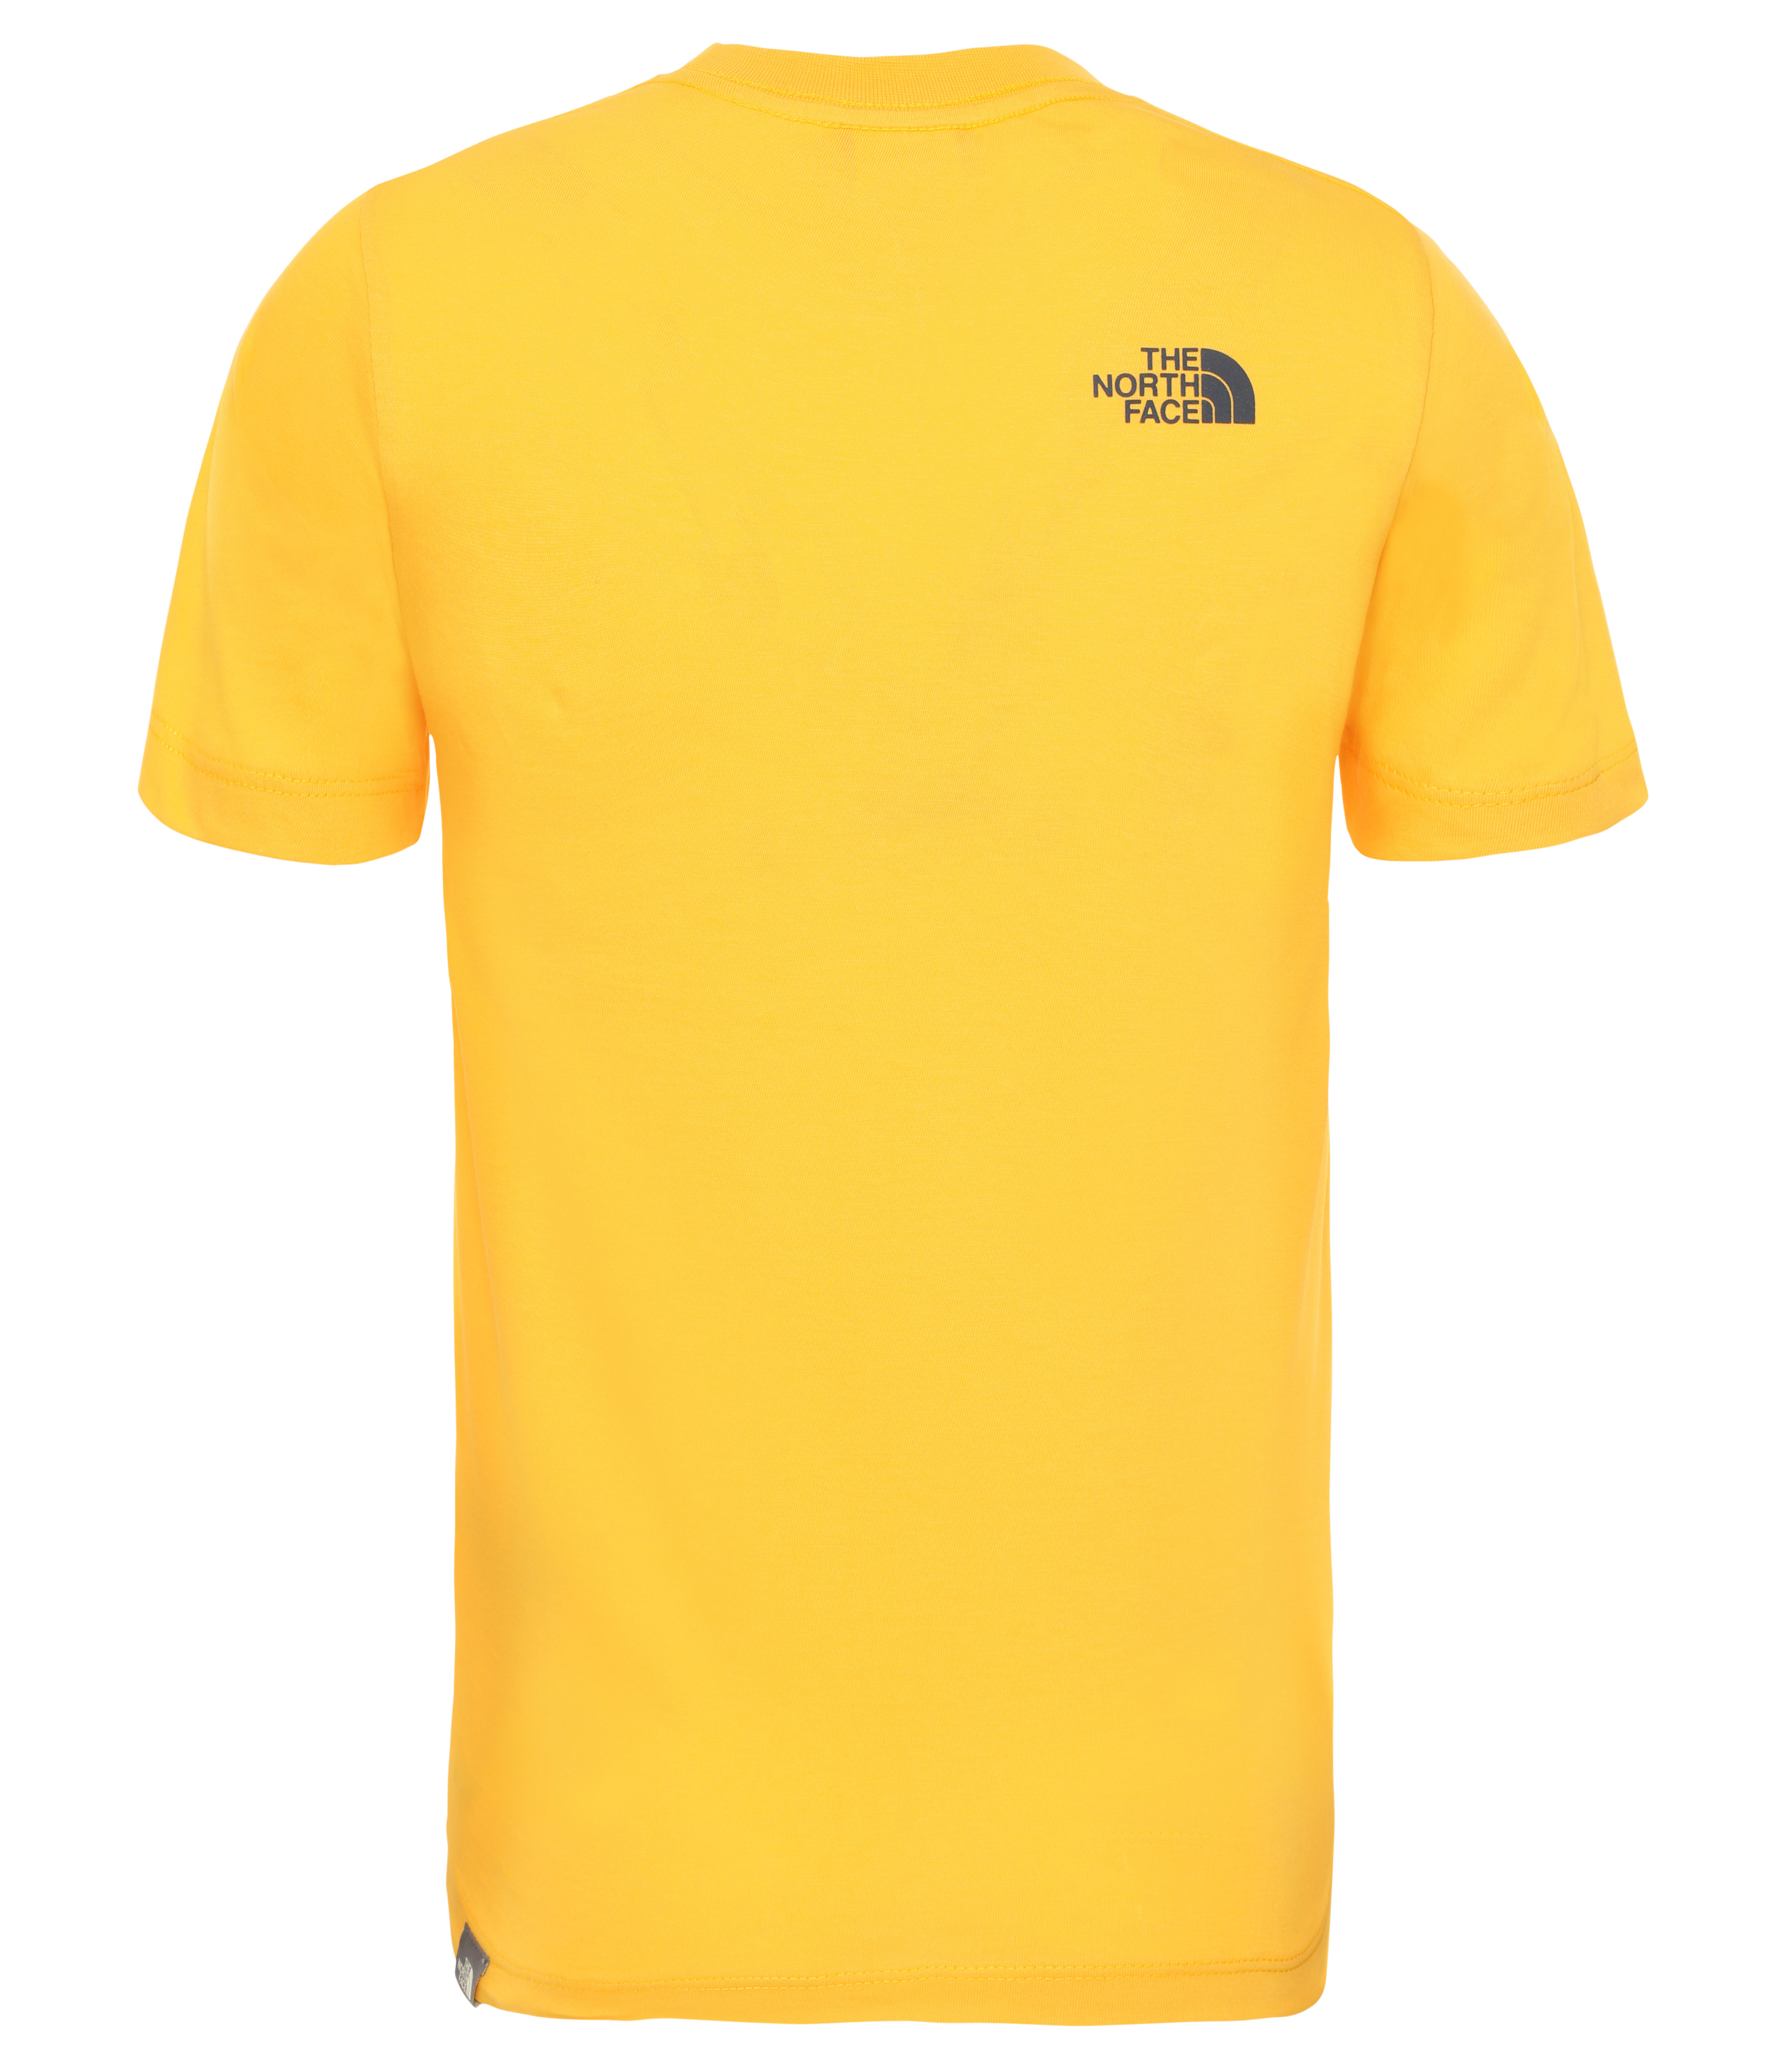 t-shirt m/m the noth face THE NORTH FACE | T-shirt m/m | A3P770M